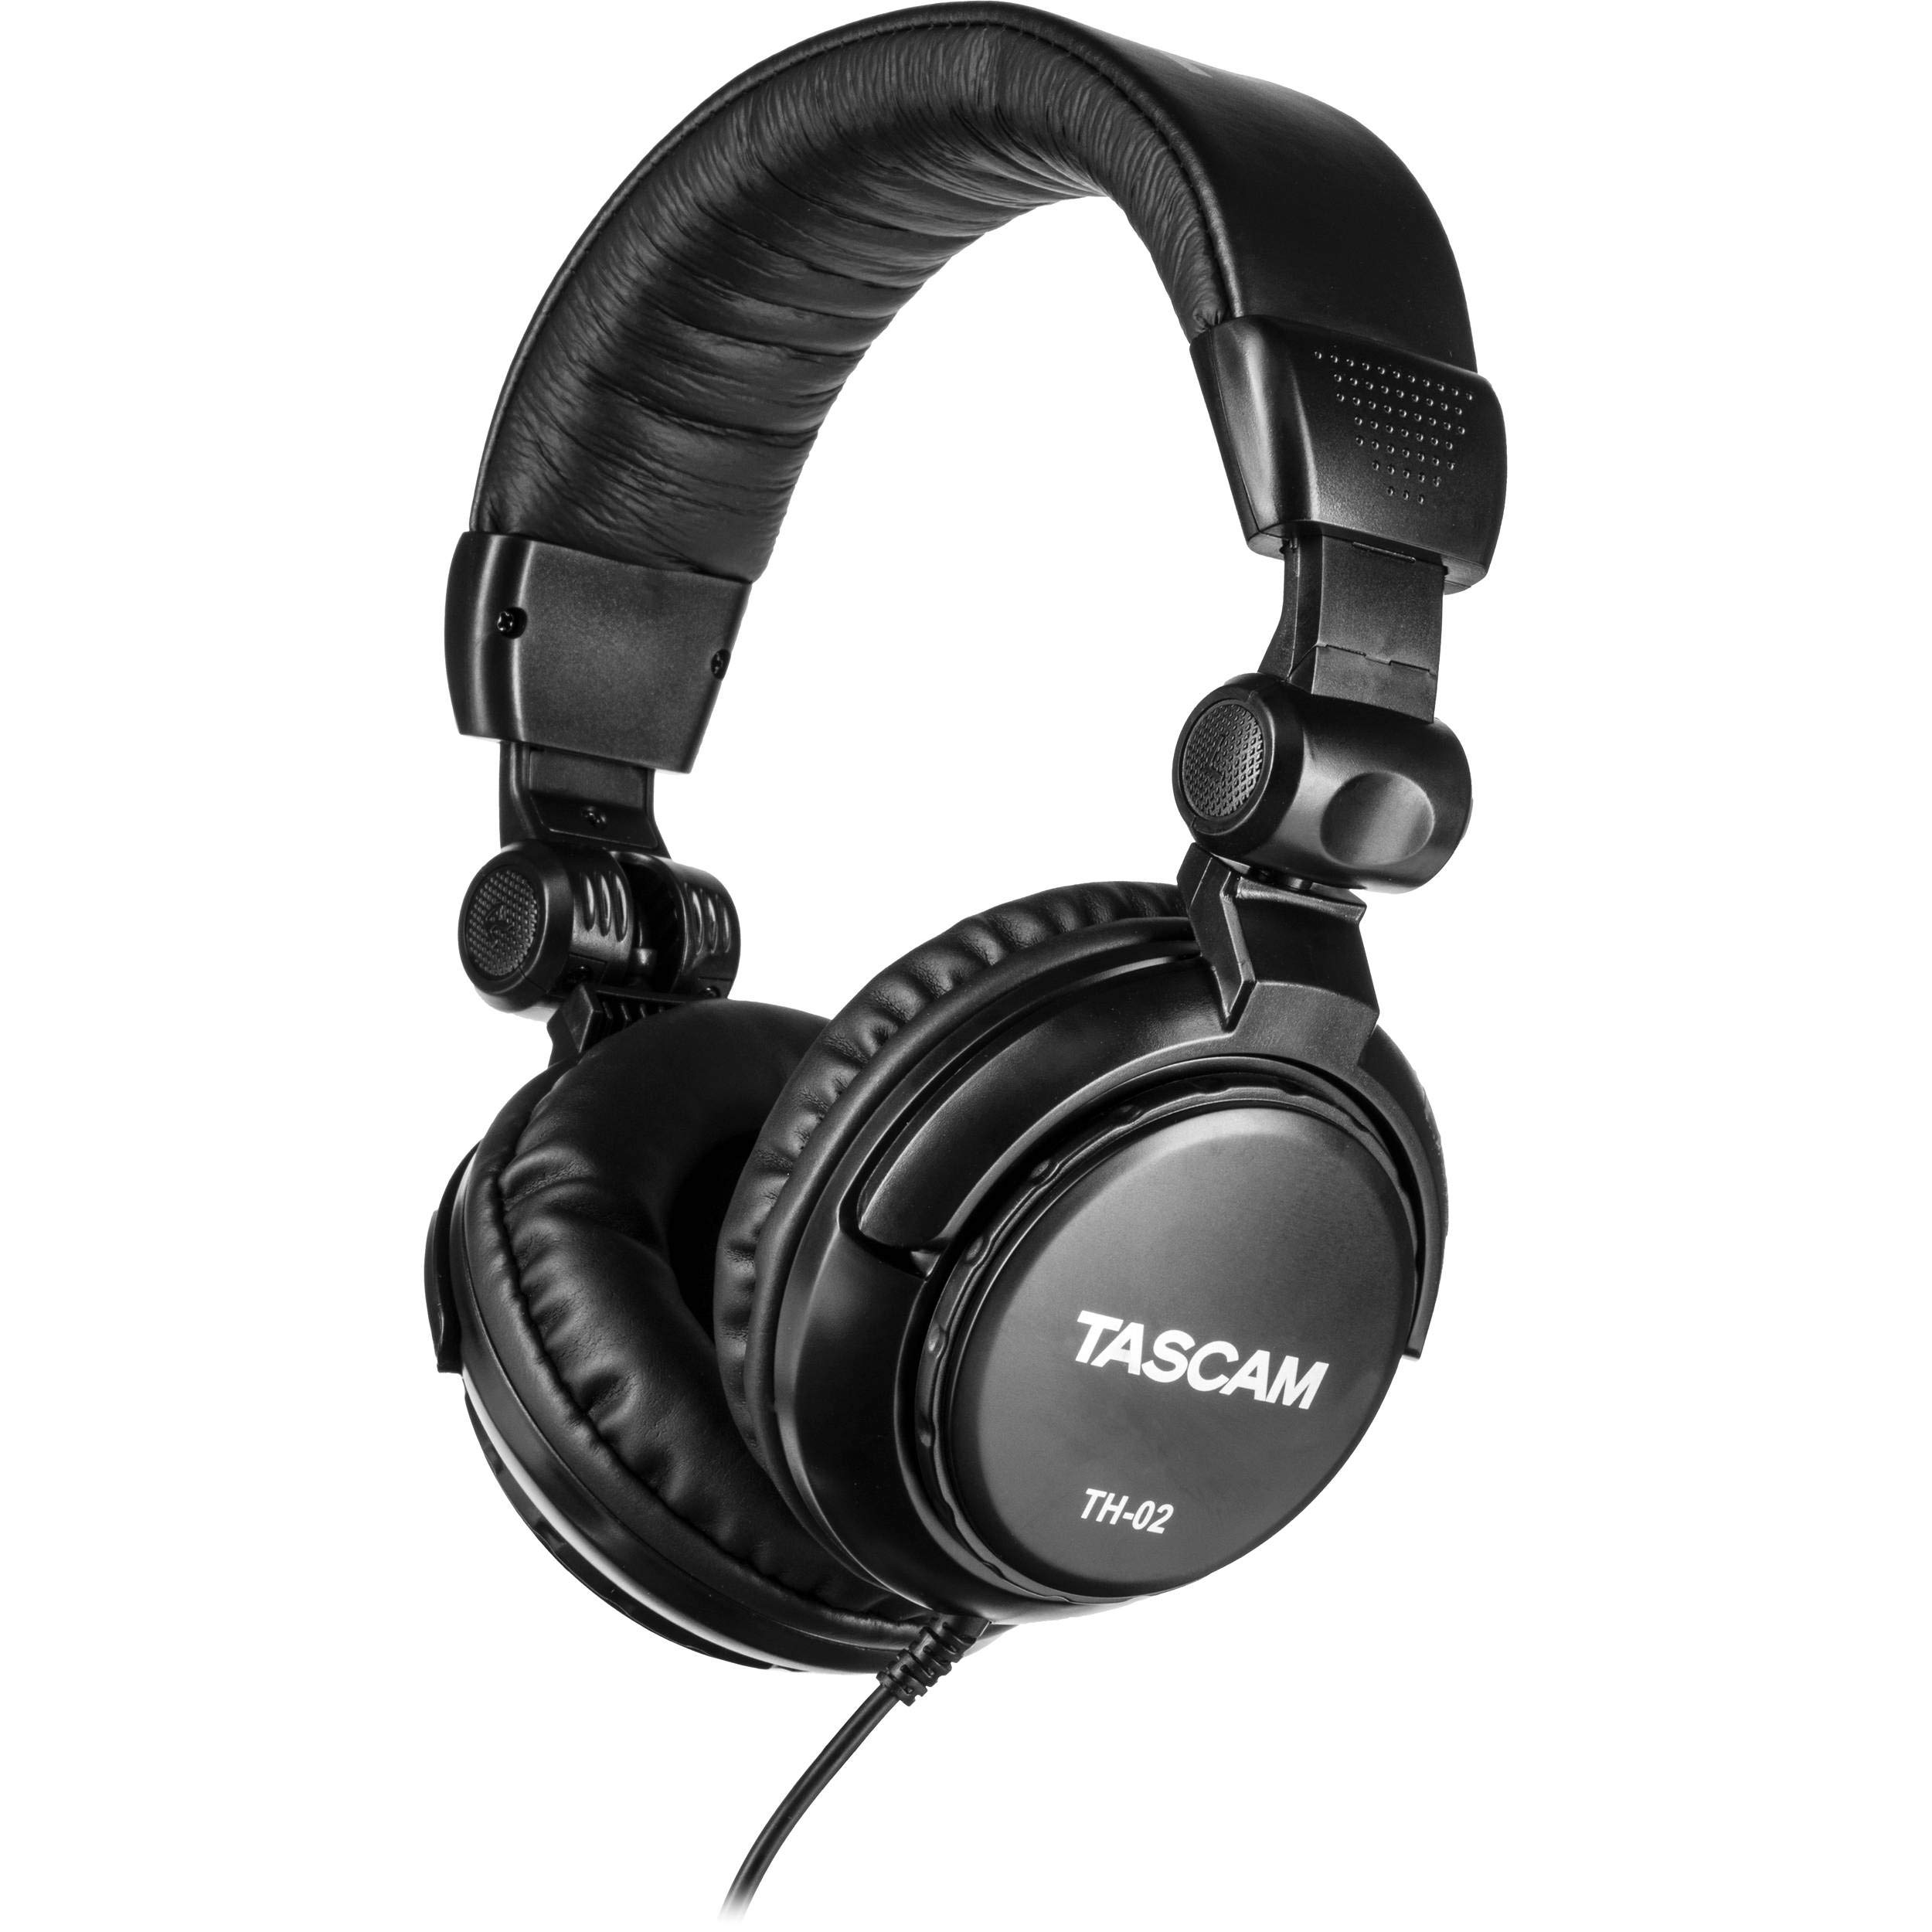 Mackie CR3 3'' Creative Reference Multimedia Monitors Bundle with Mackie Onyx Artist 1-2 USB Audio Interface and Tascam TH-02 Closed Back Studio Headphones by Circuit City (Image #9)